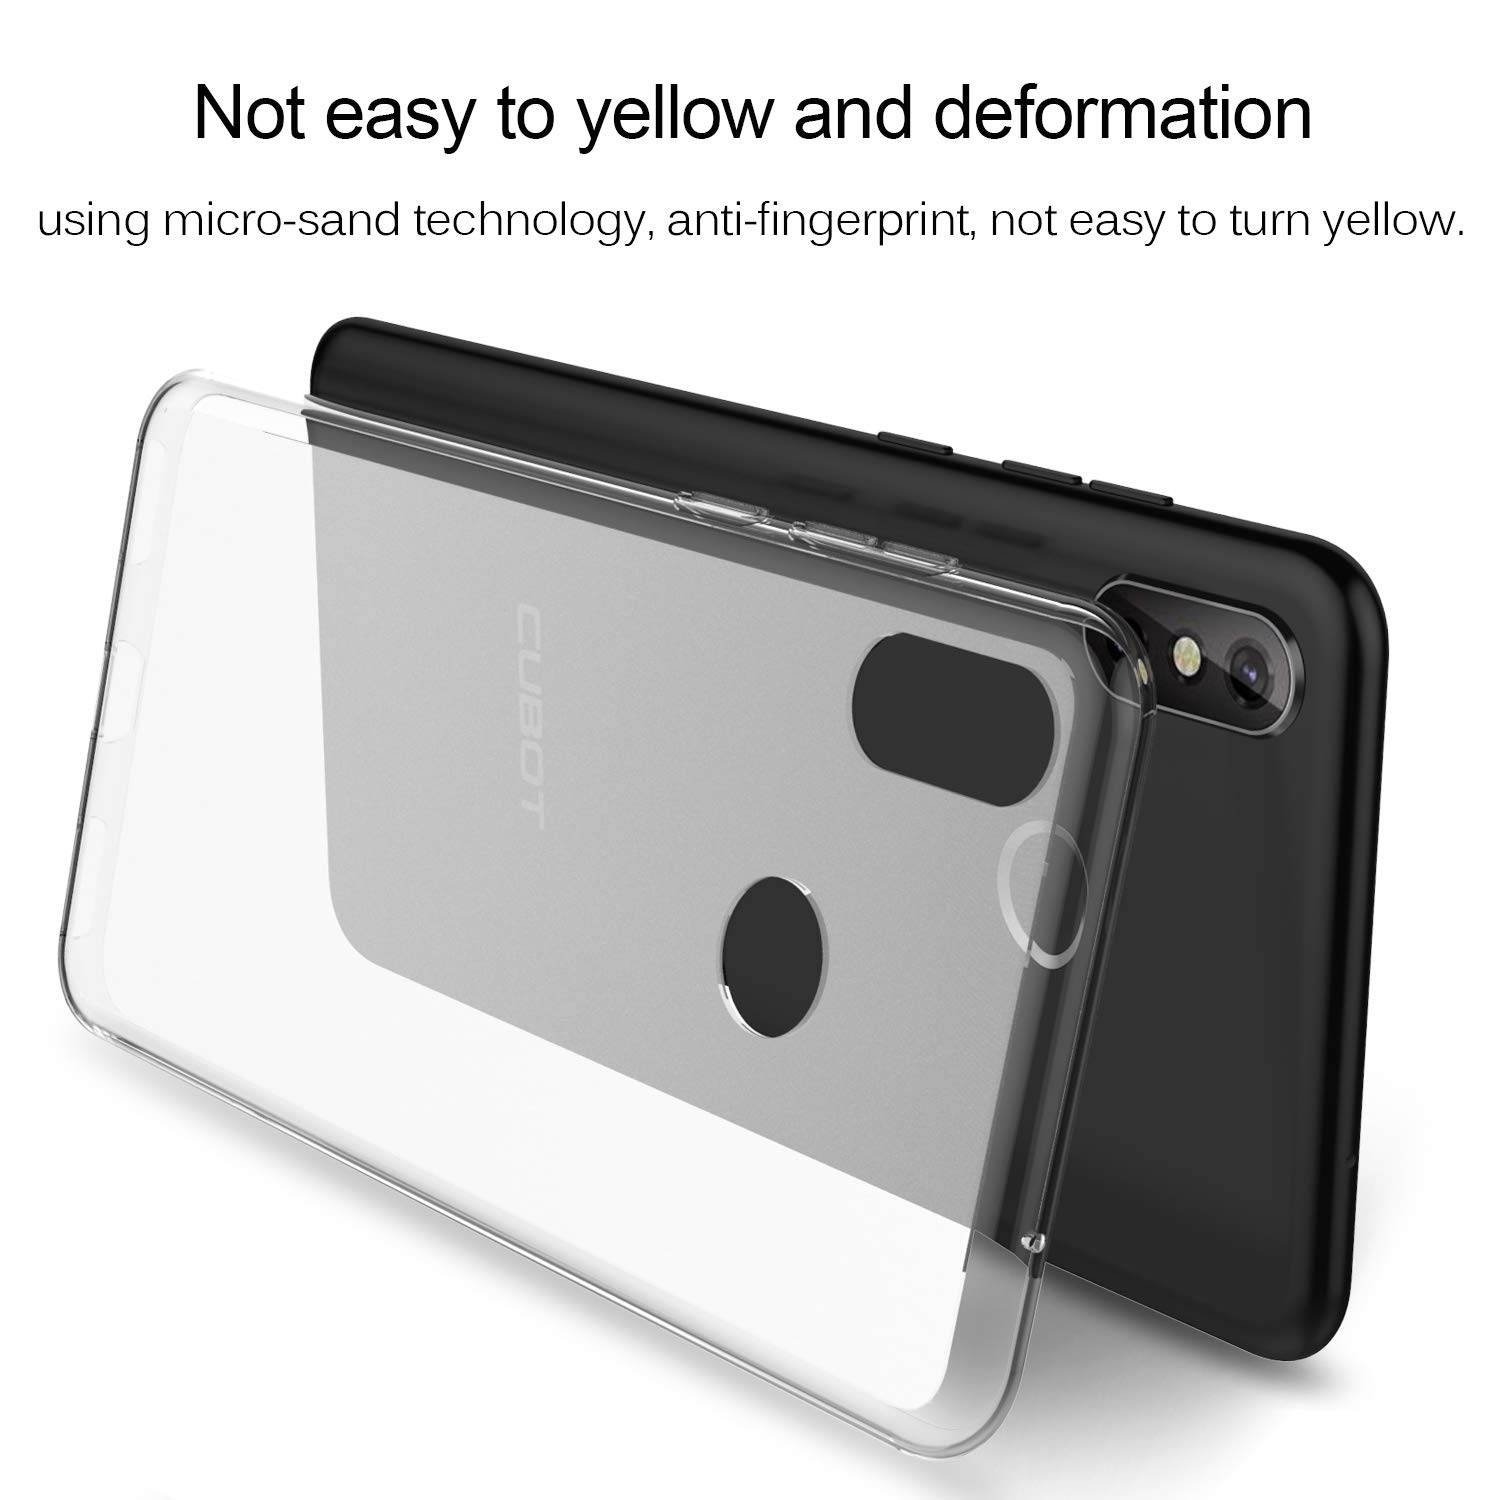 Amazon.com: KuGi Cubot p20 Case, Ultra-Thin Soft TPU Gel ...